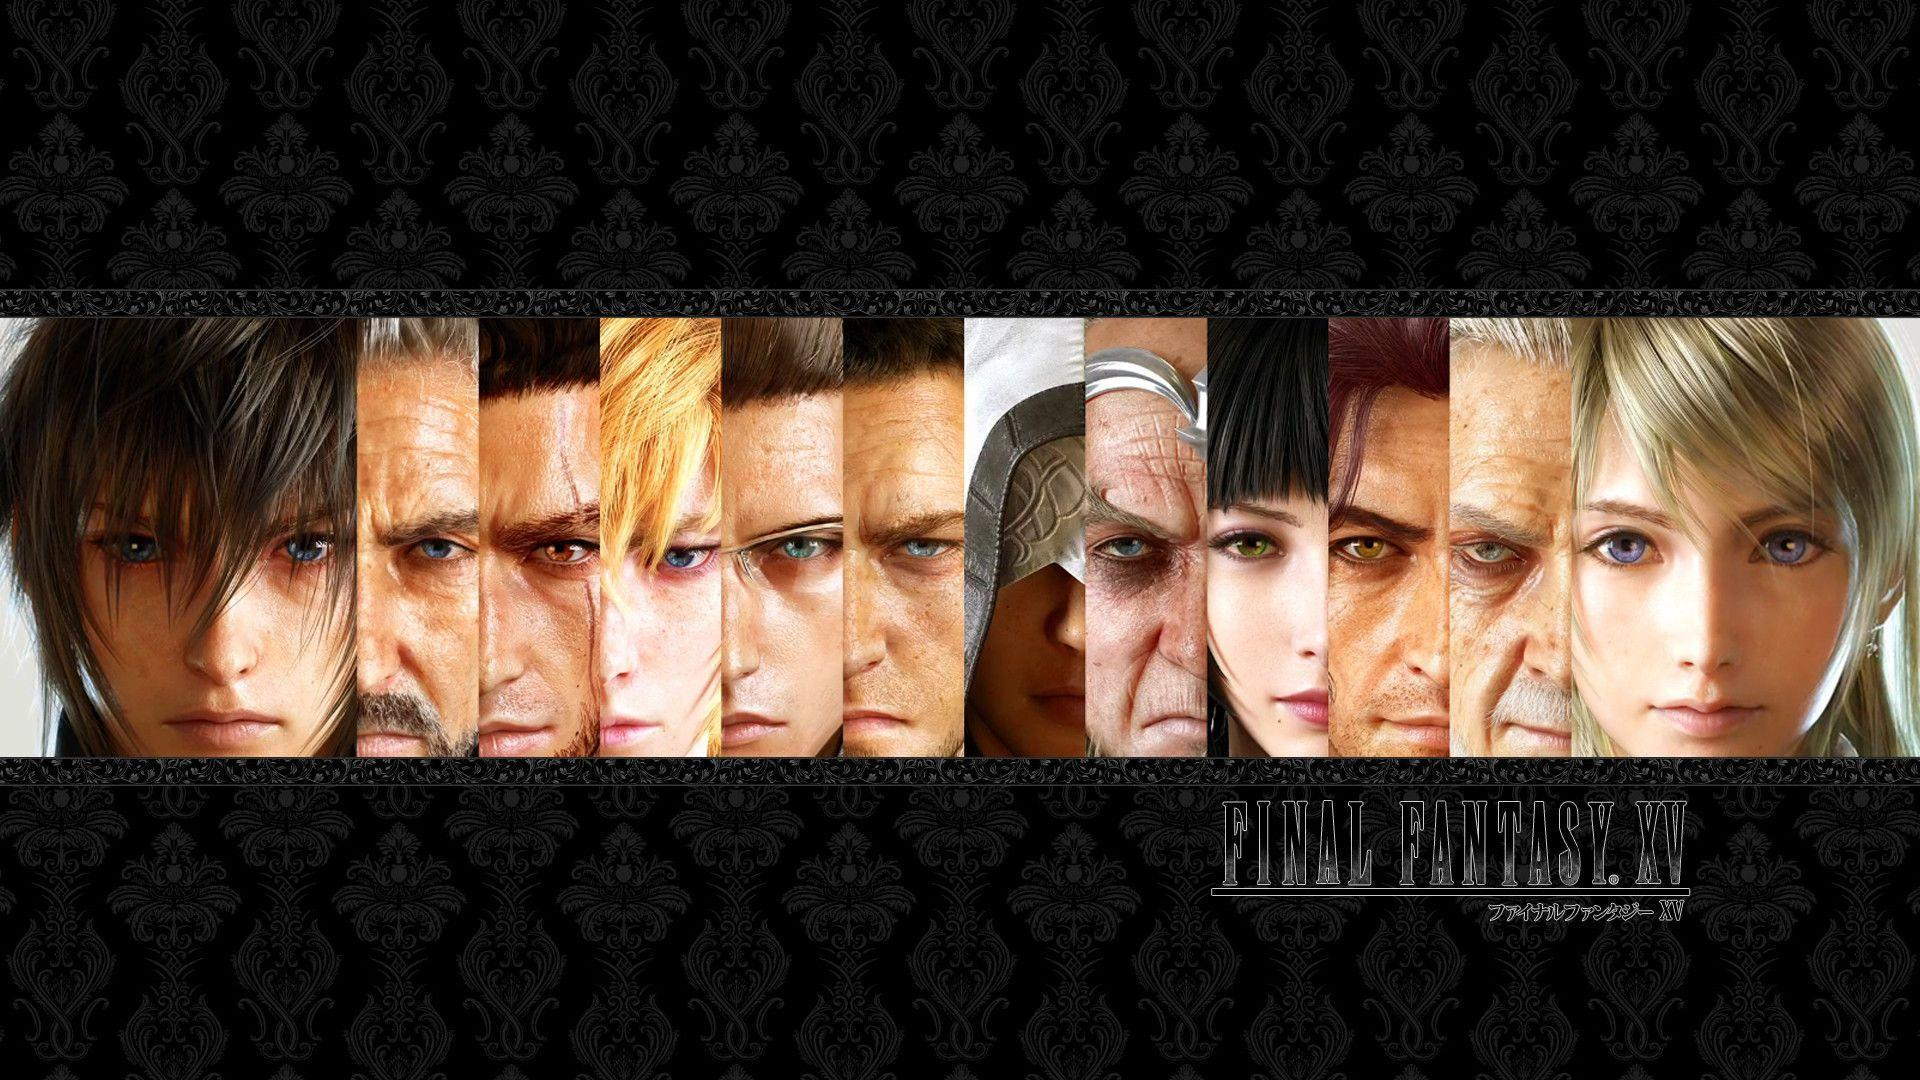 Final Fantasy XV Wallpapers for PC